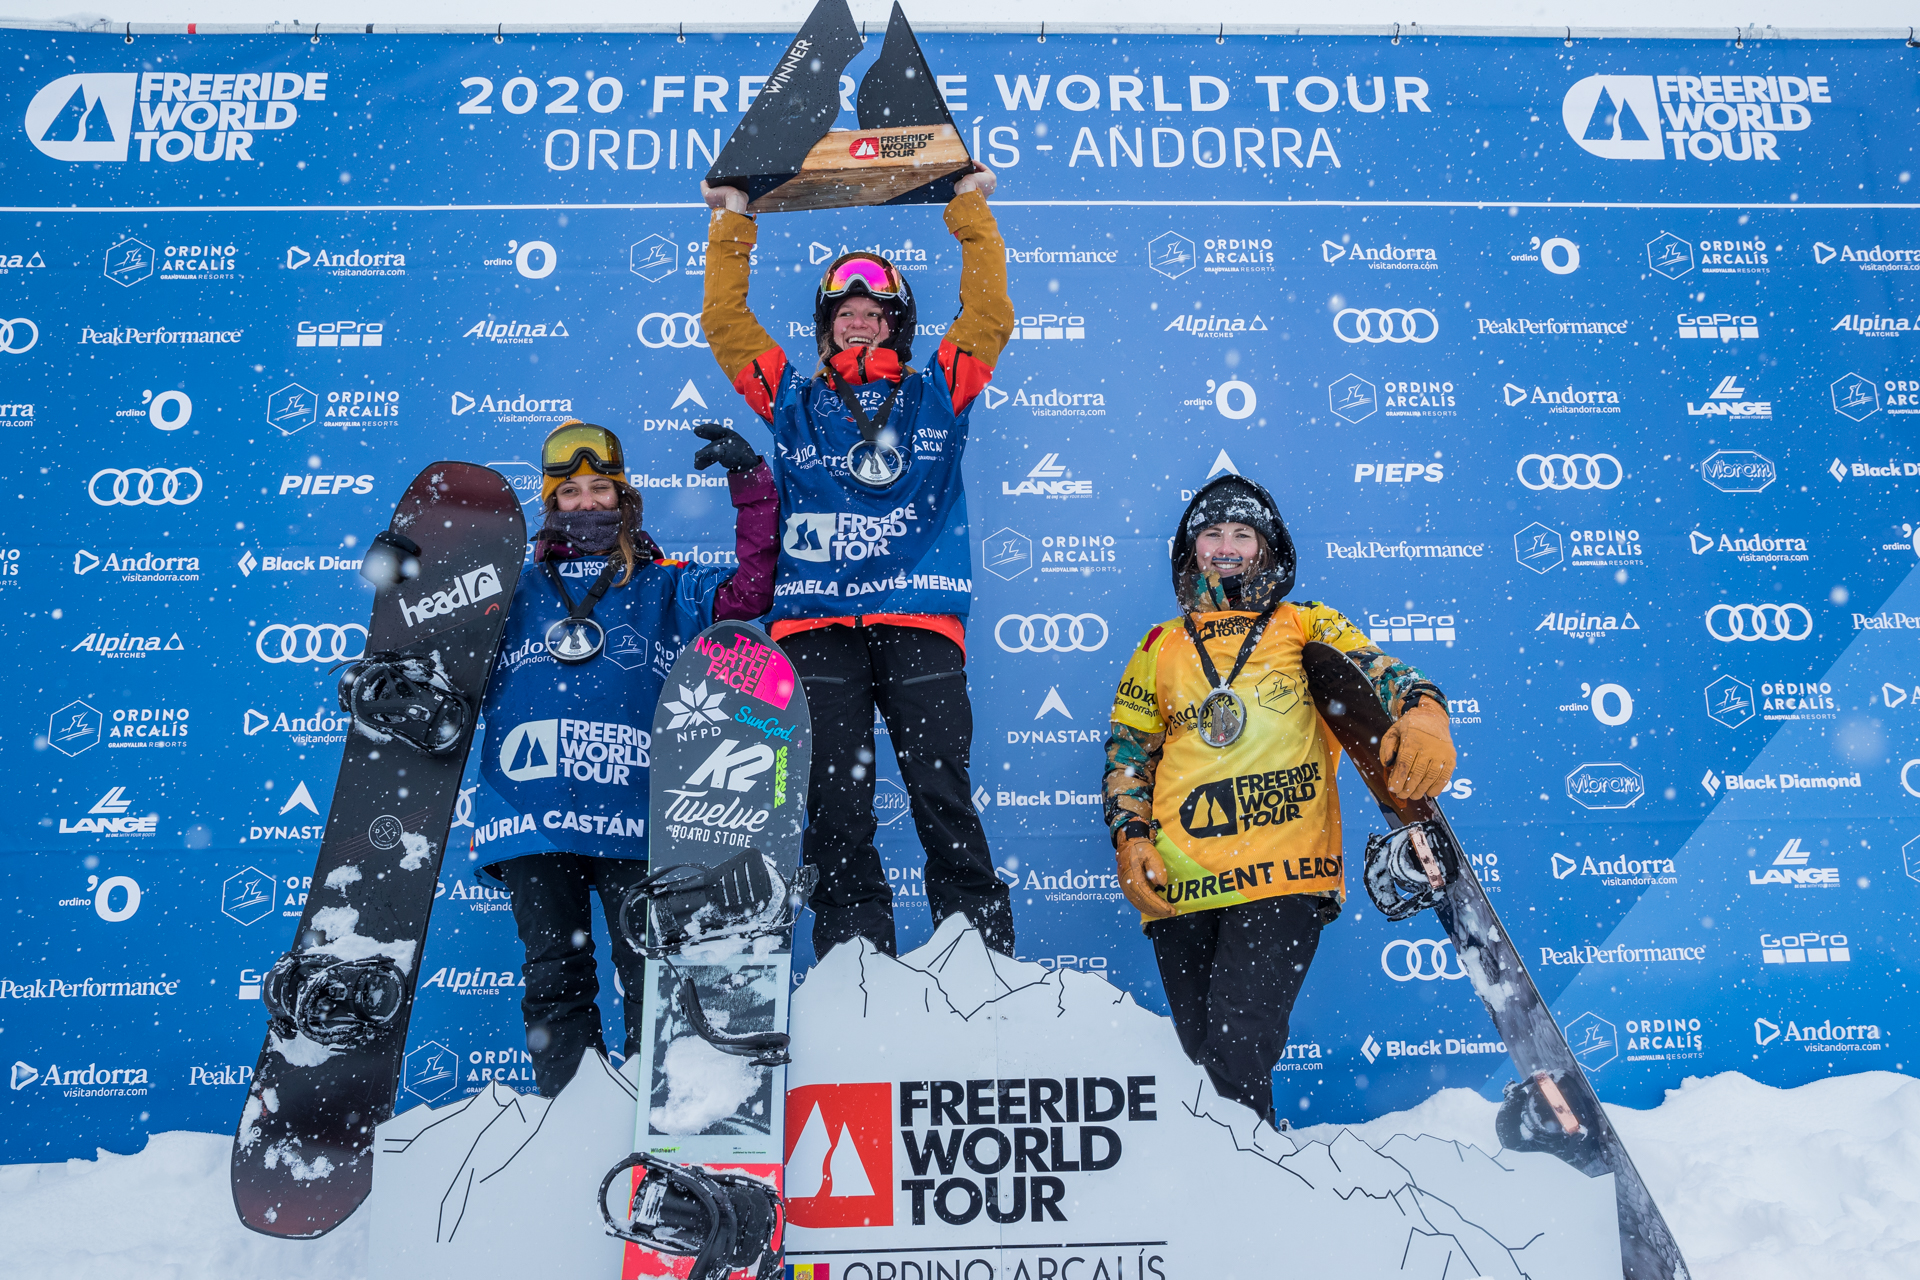 Freeride world tour winner